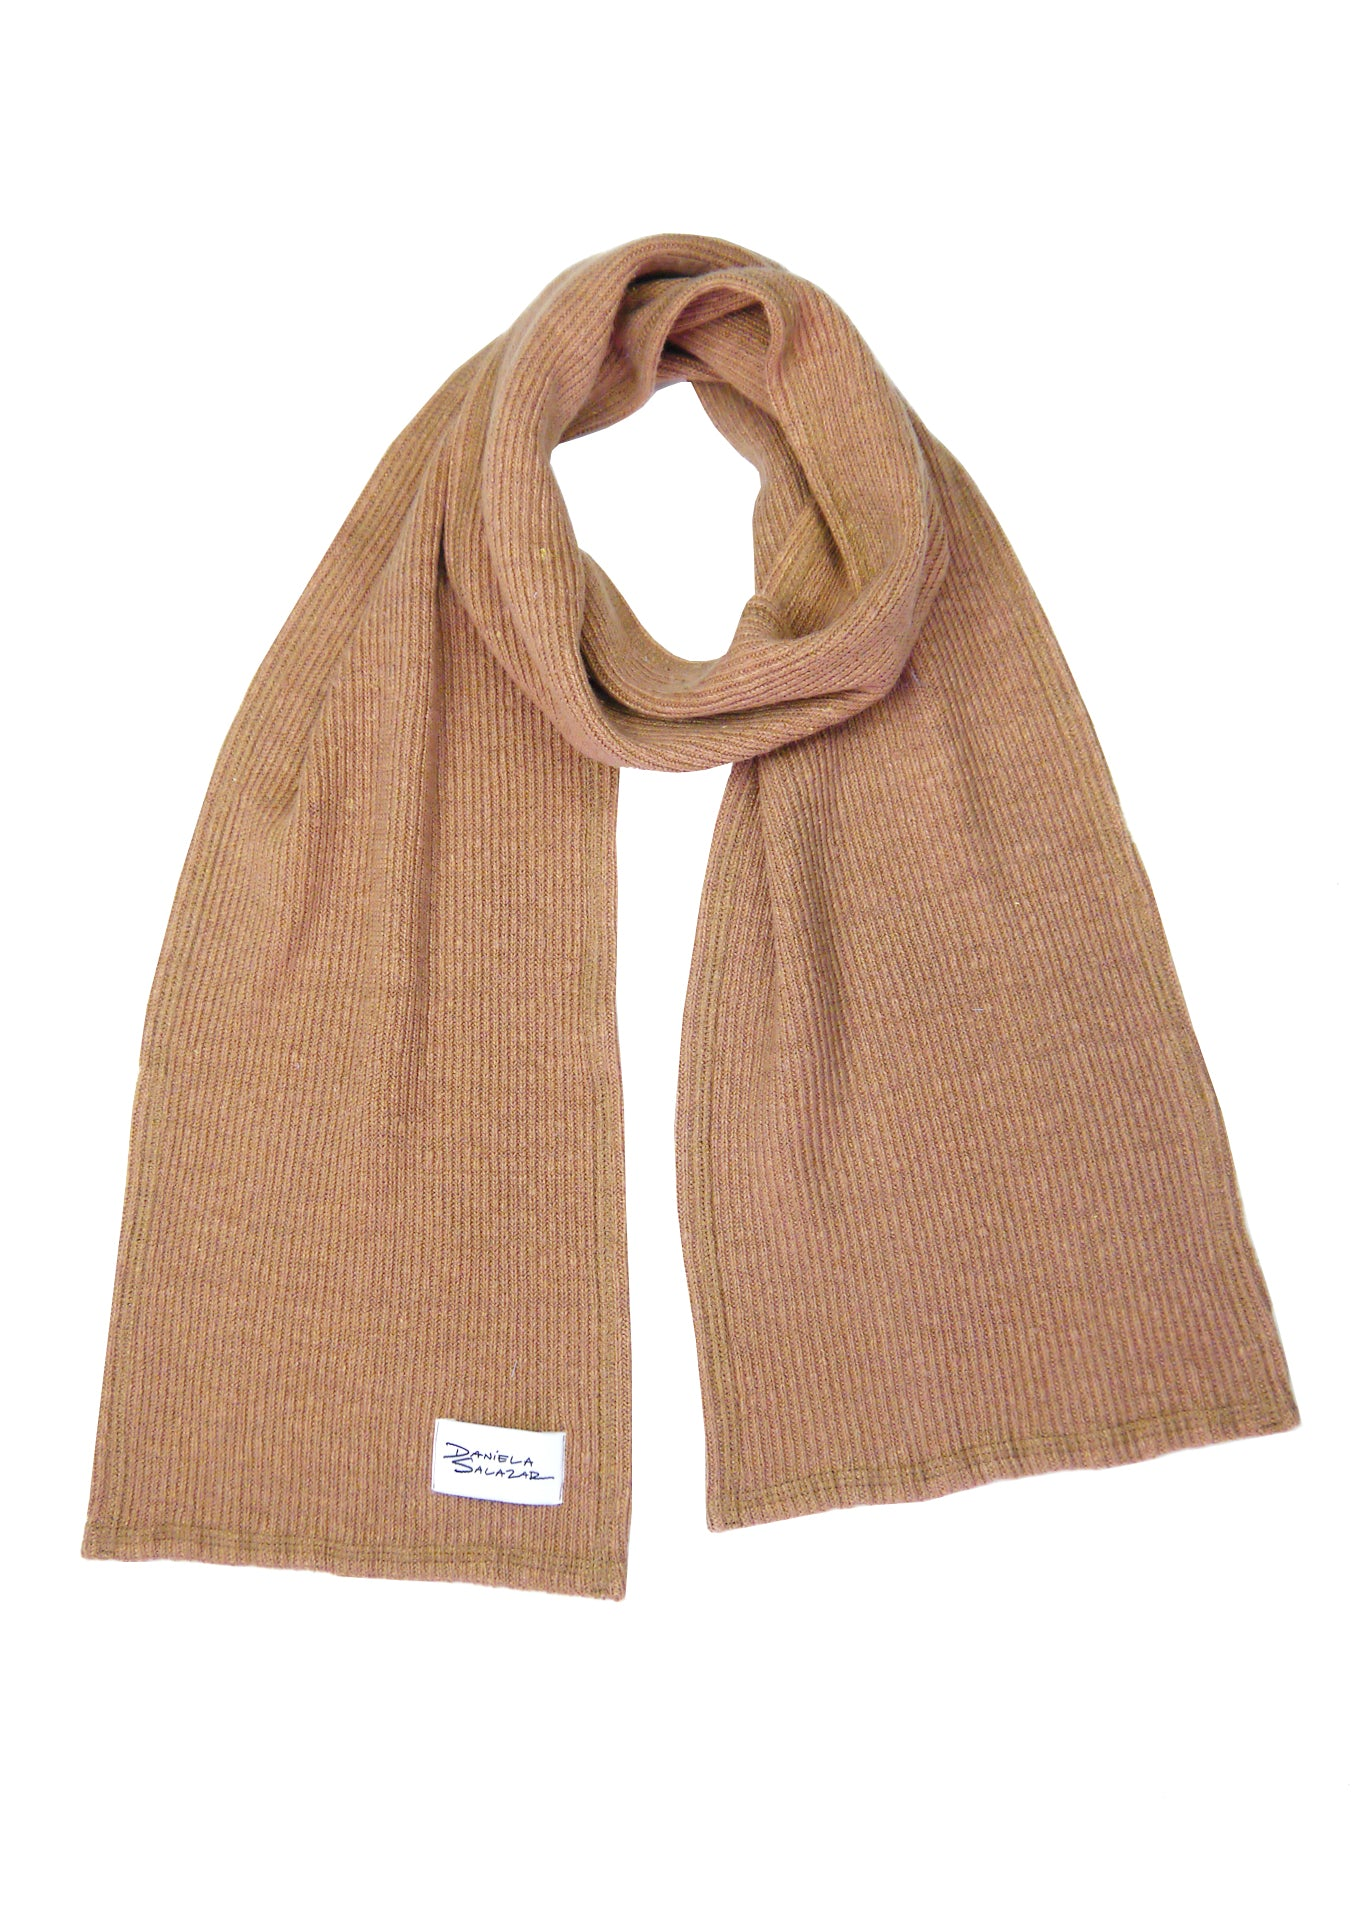 Ava - Hemp Scarf in Caramel Brown